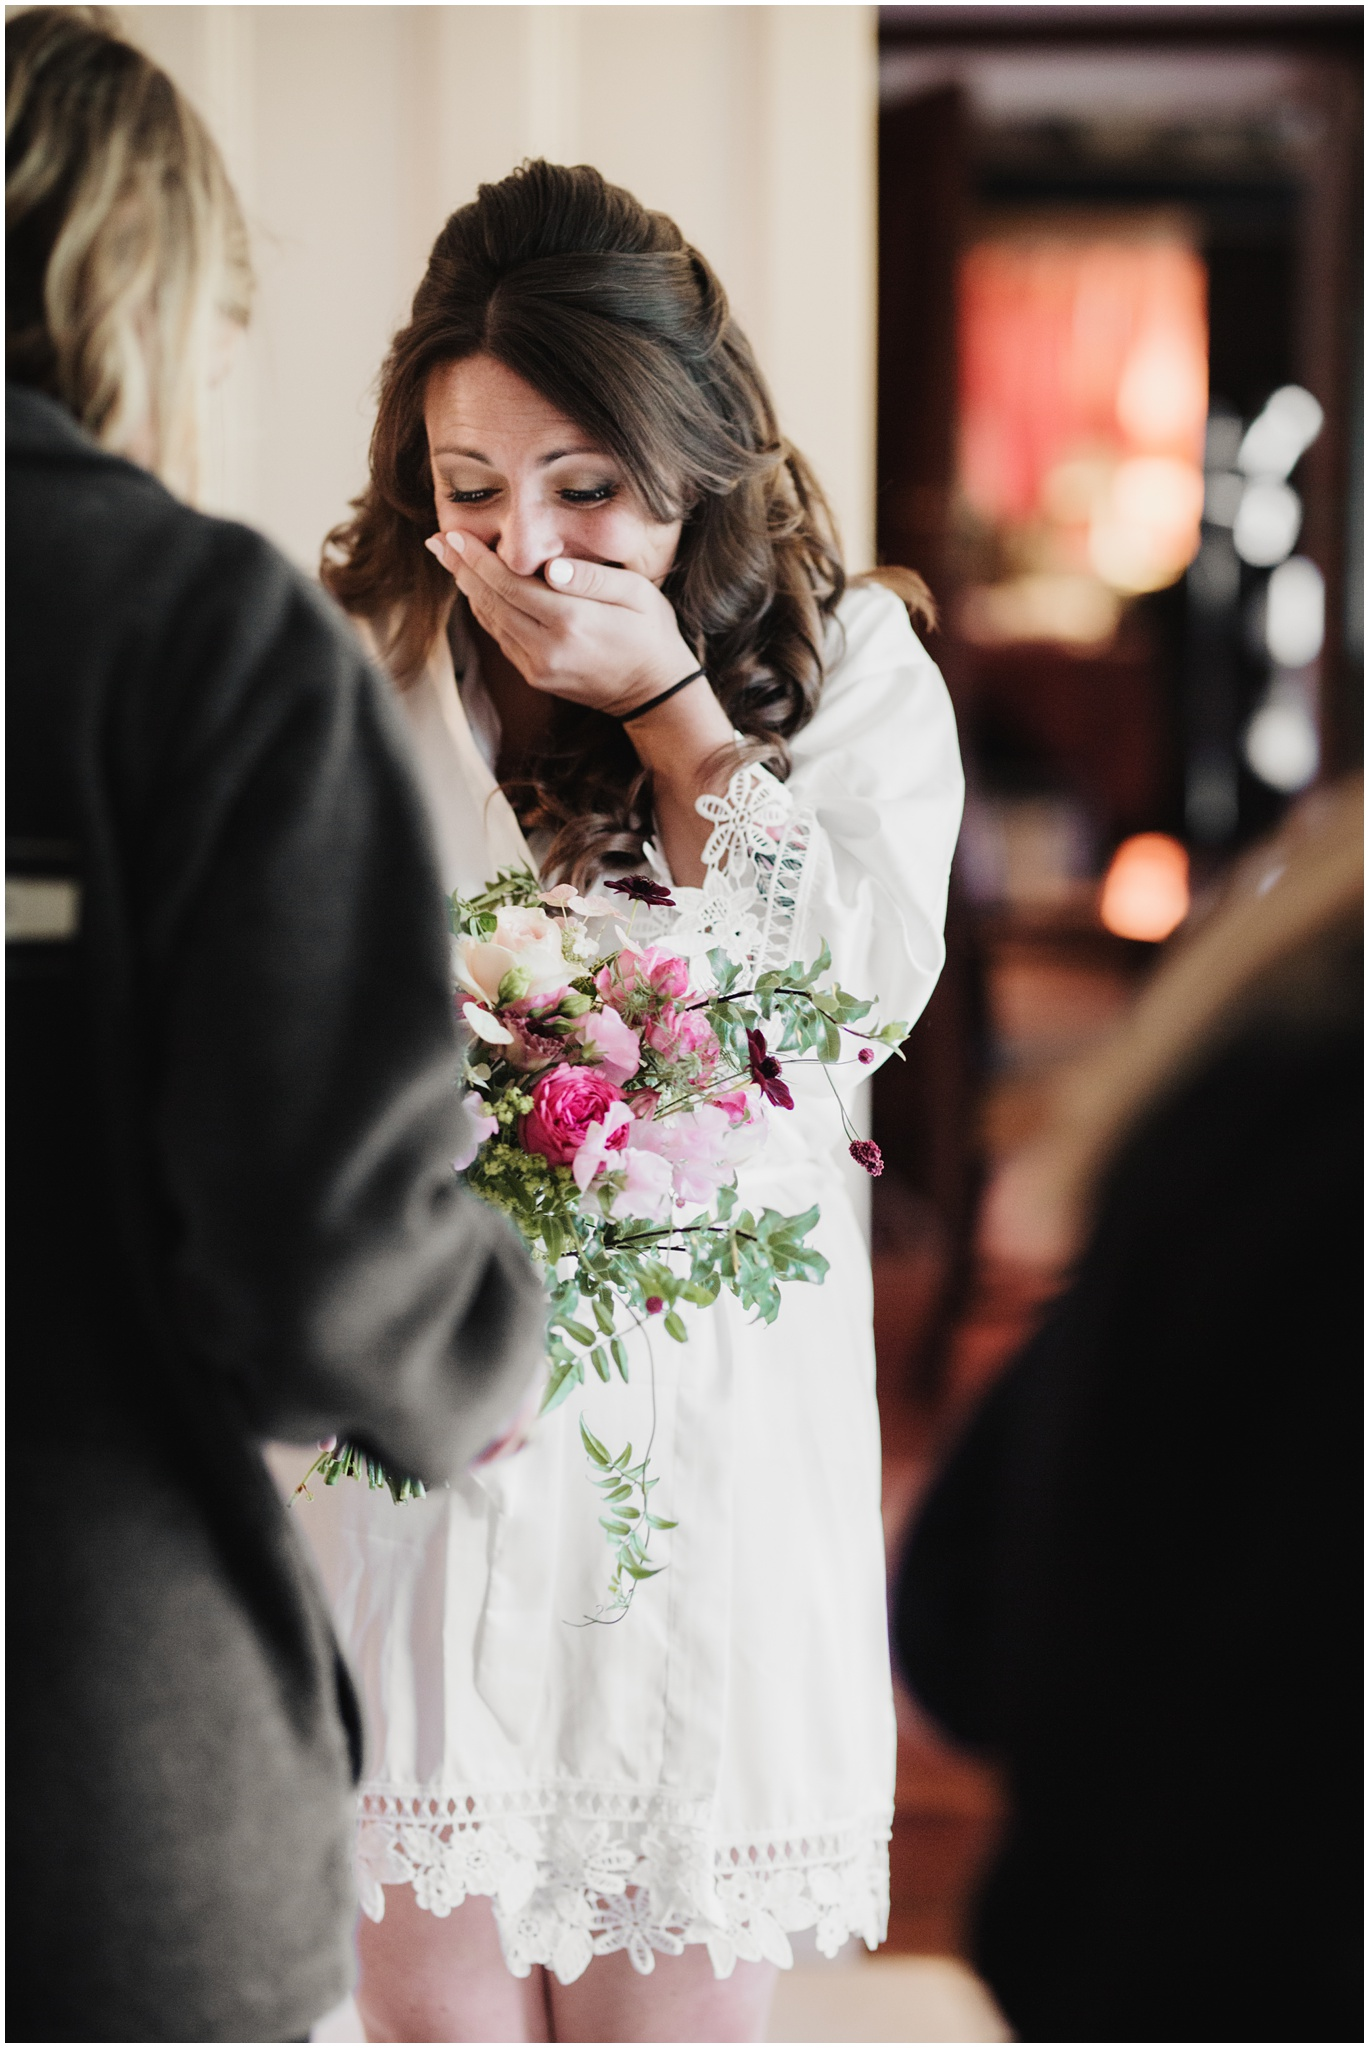 Brides reaction to seeing her flowers